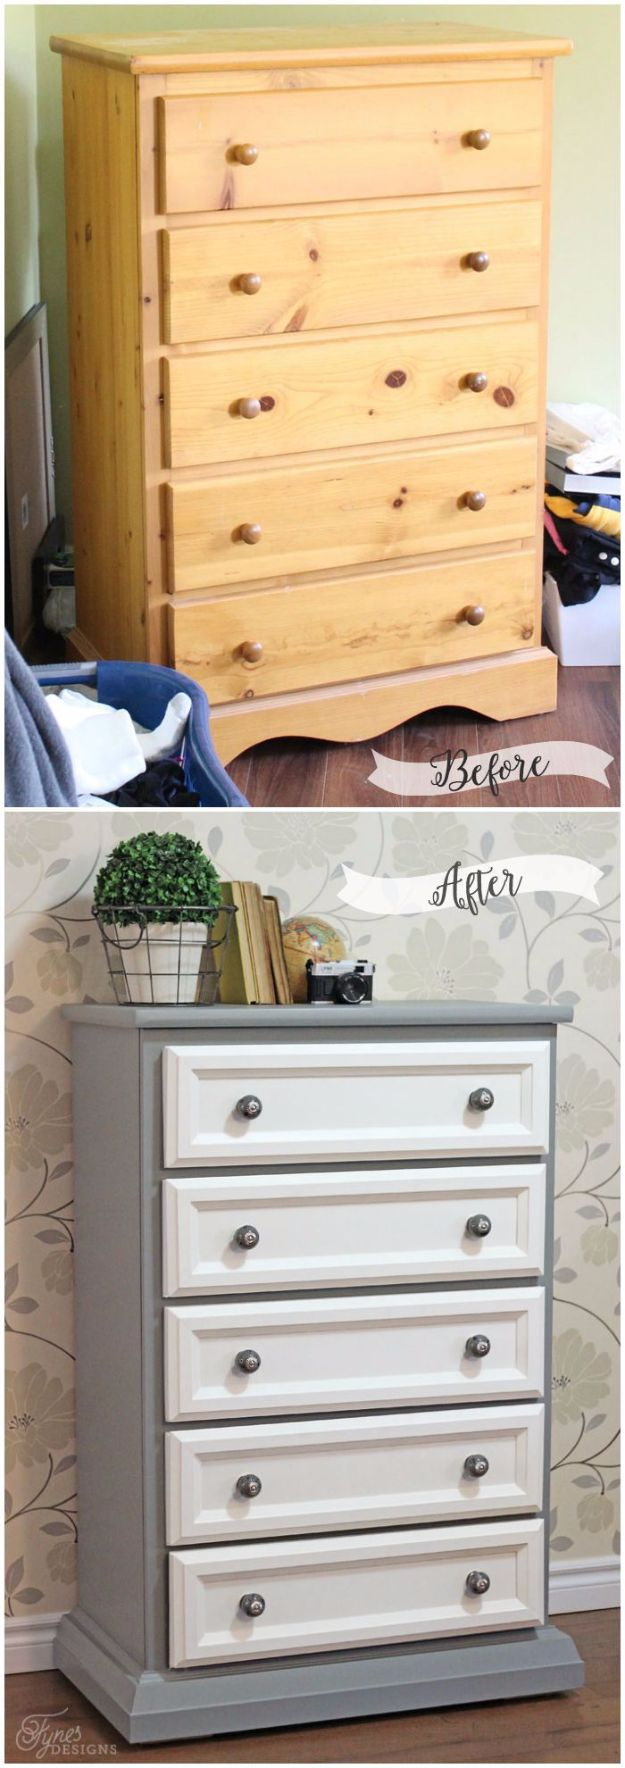 17 Unbelievable DIY Furniture Makeover Ideas That Will ...